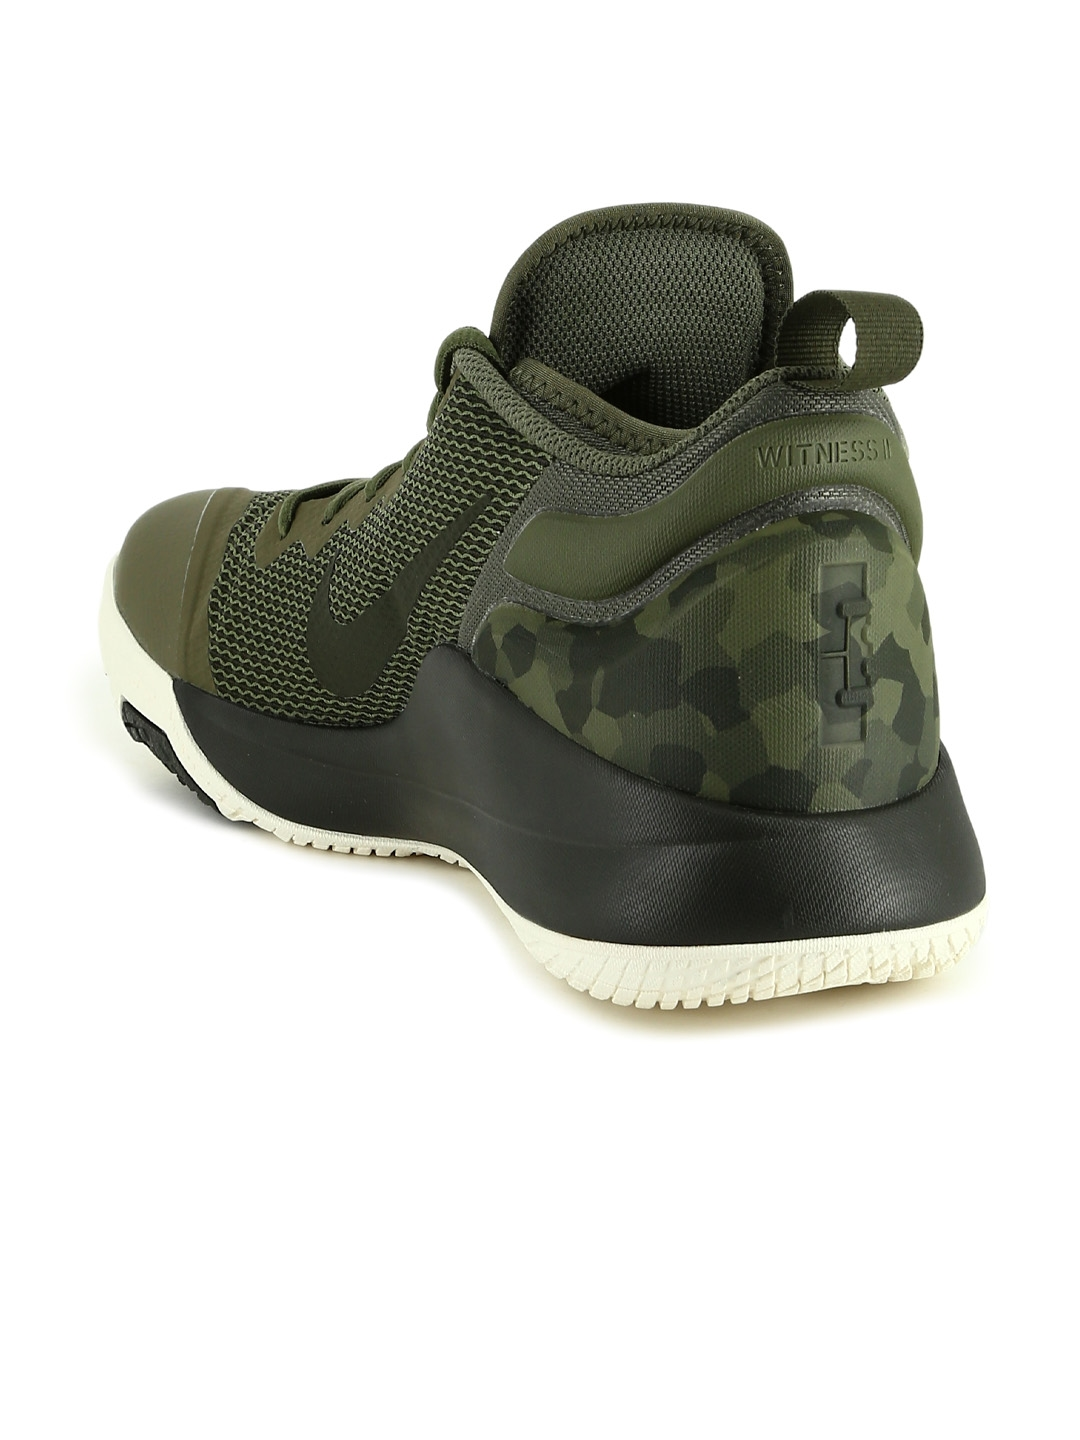 huge discount ccd9c 3c3e2 11516336255776-Nike-Men-Olive-Green-Textile-Mid-Top-Basketball-Shoes -891516336255702-2.jpg